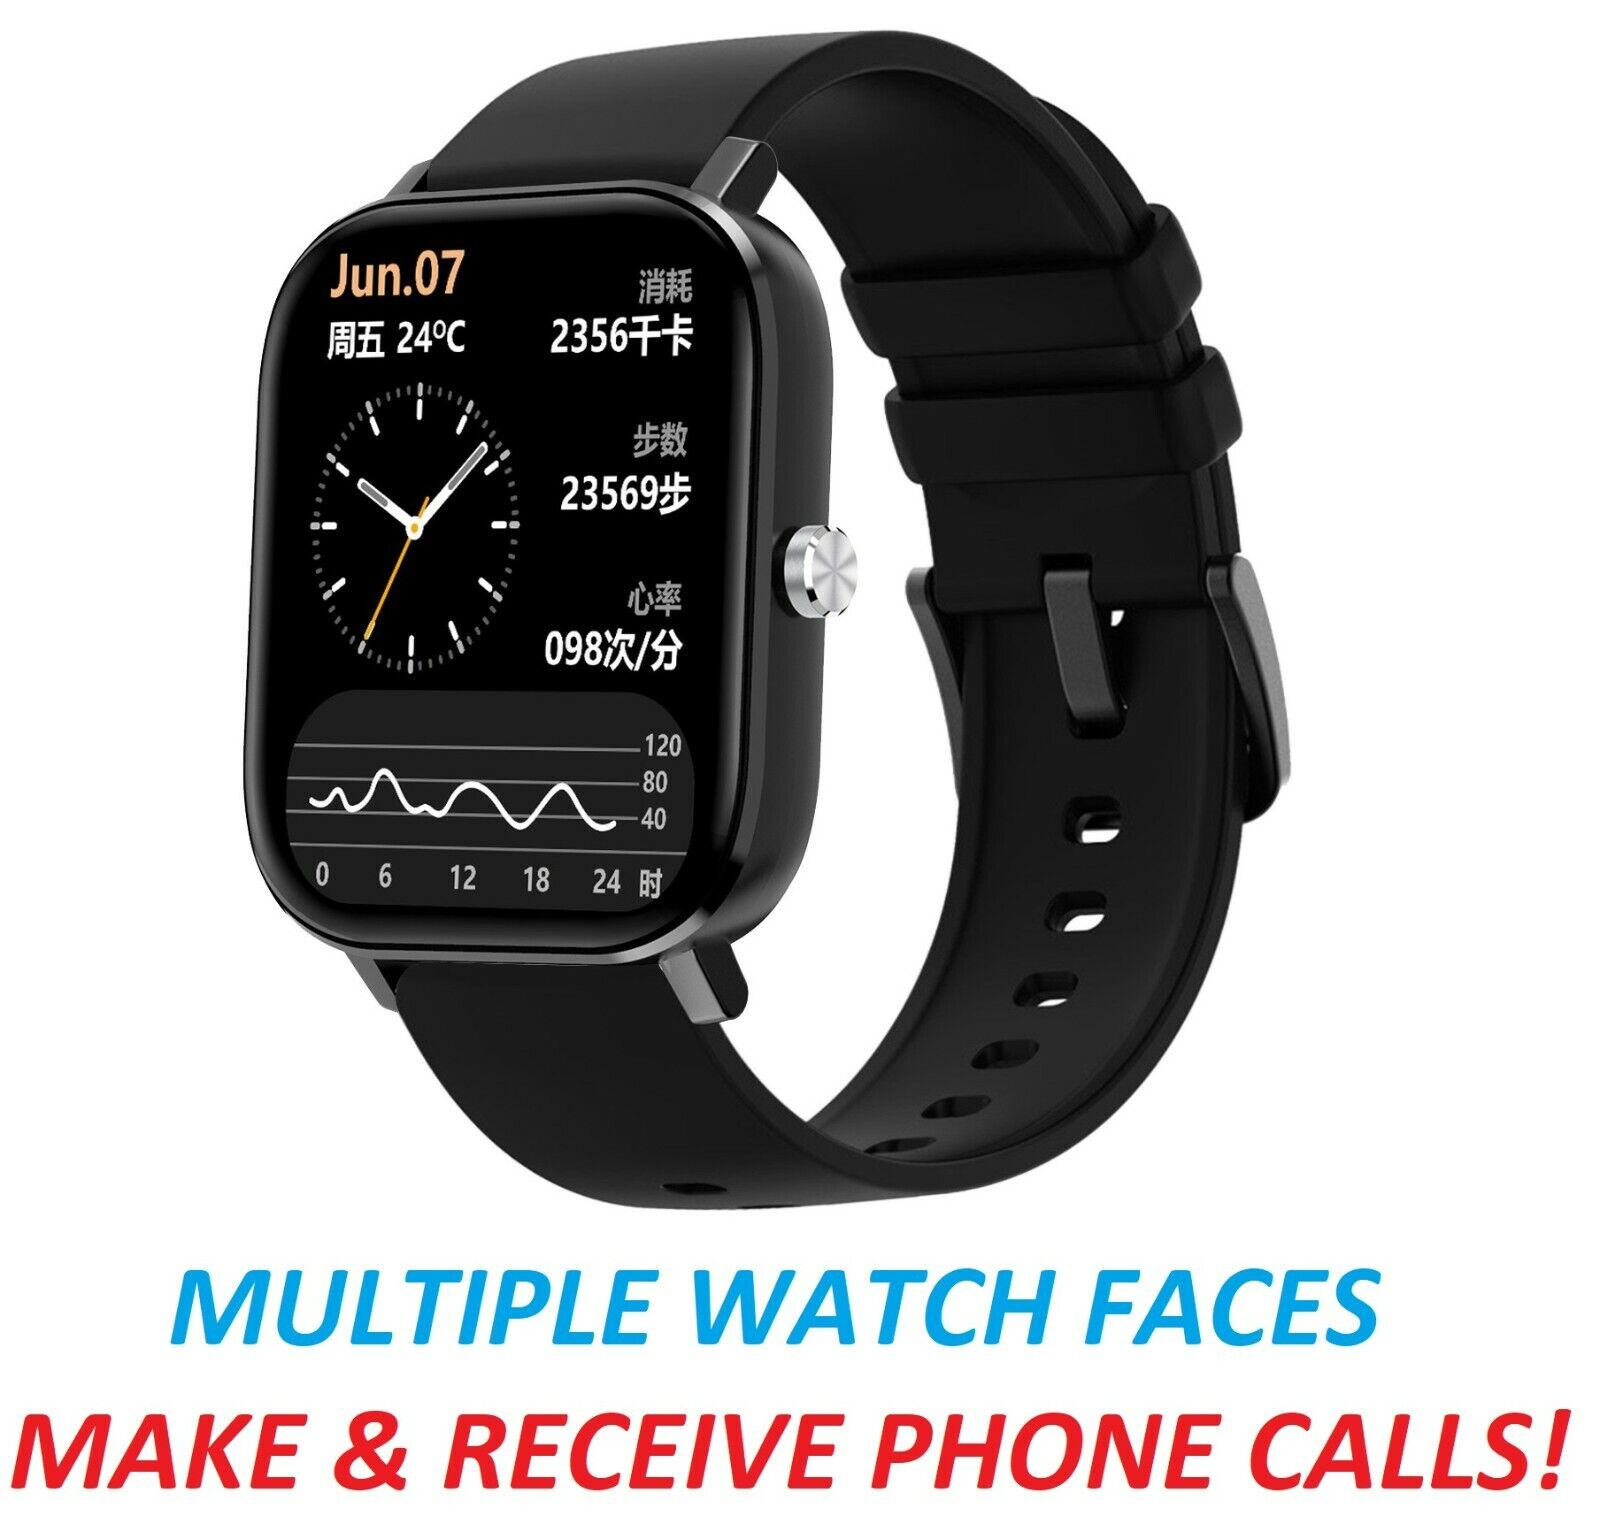 New Fitness Tracker Fitness Watch Heart Rate Monitor Smart Watches for Men Women